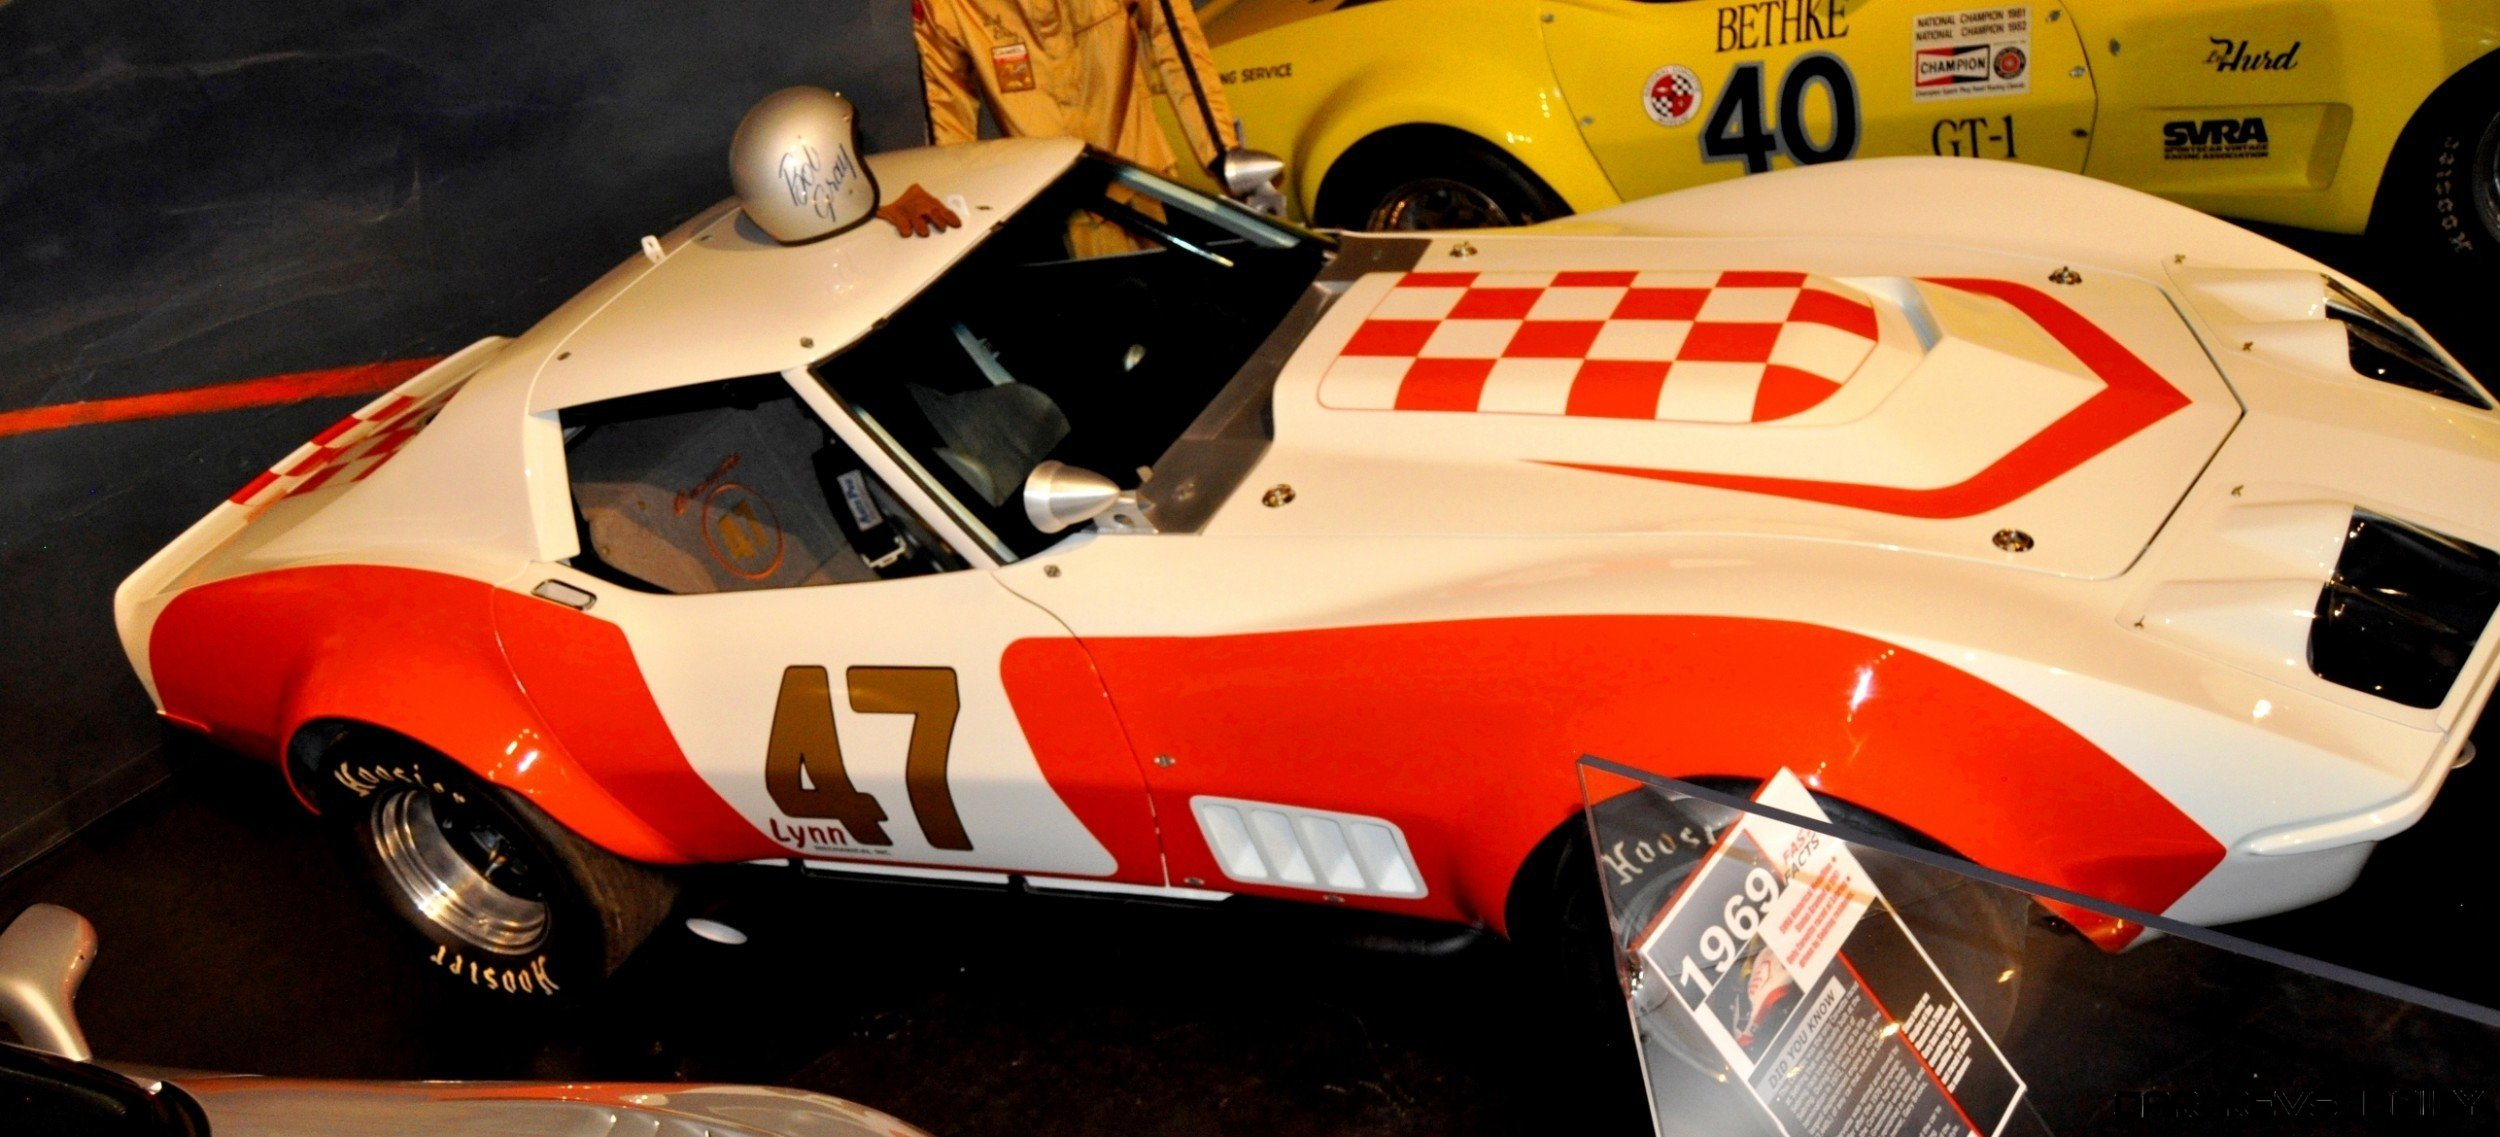 Corvette Museum -- The Racecars! 58 High-Res Photos -- Plus NCM Motorsports Park A High-Speed Dream 18